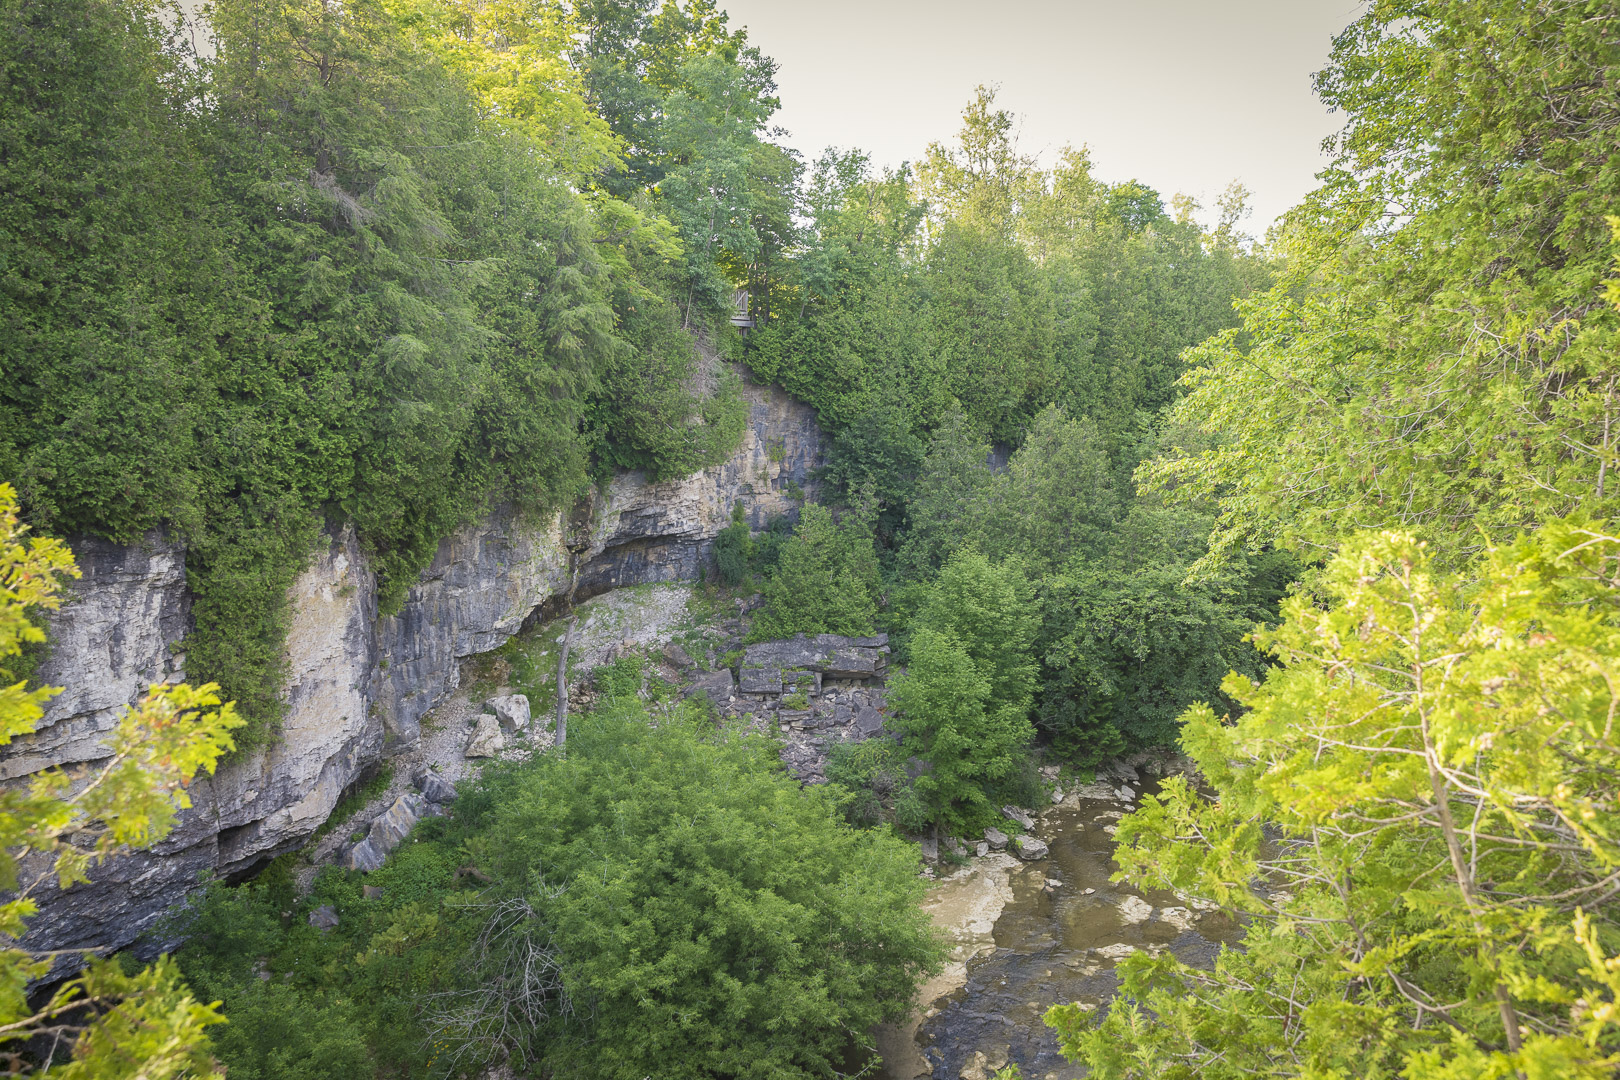 More of the Gorge